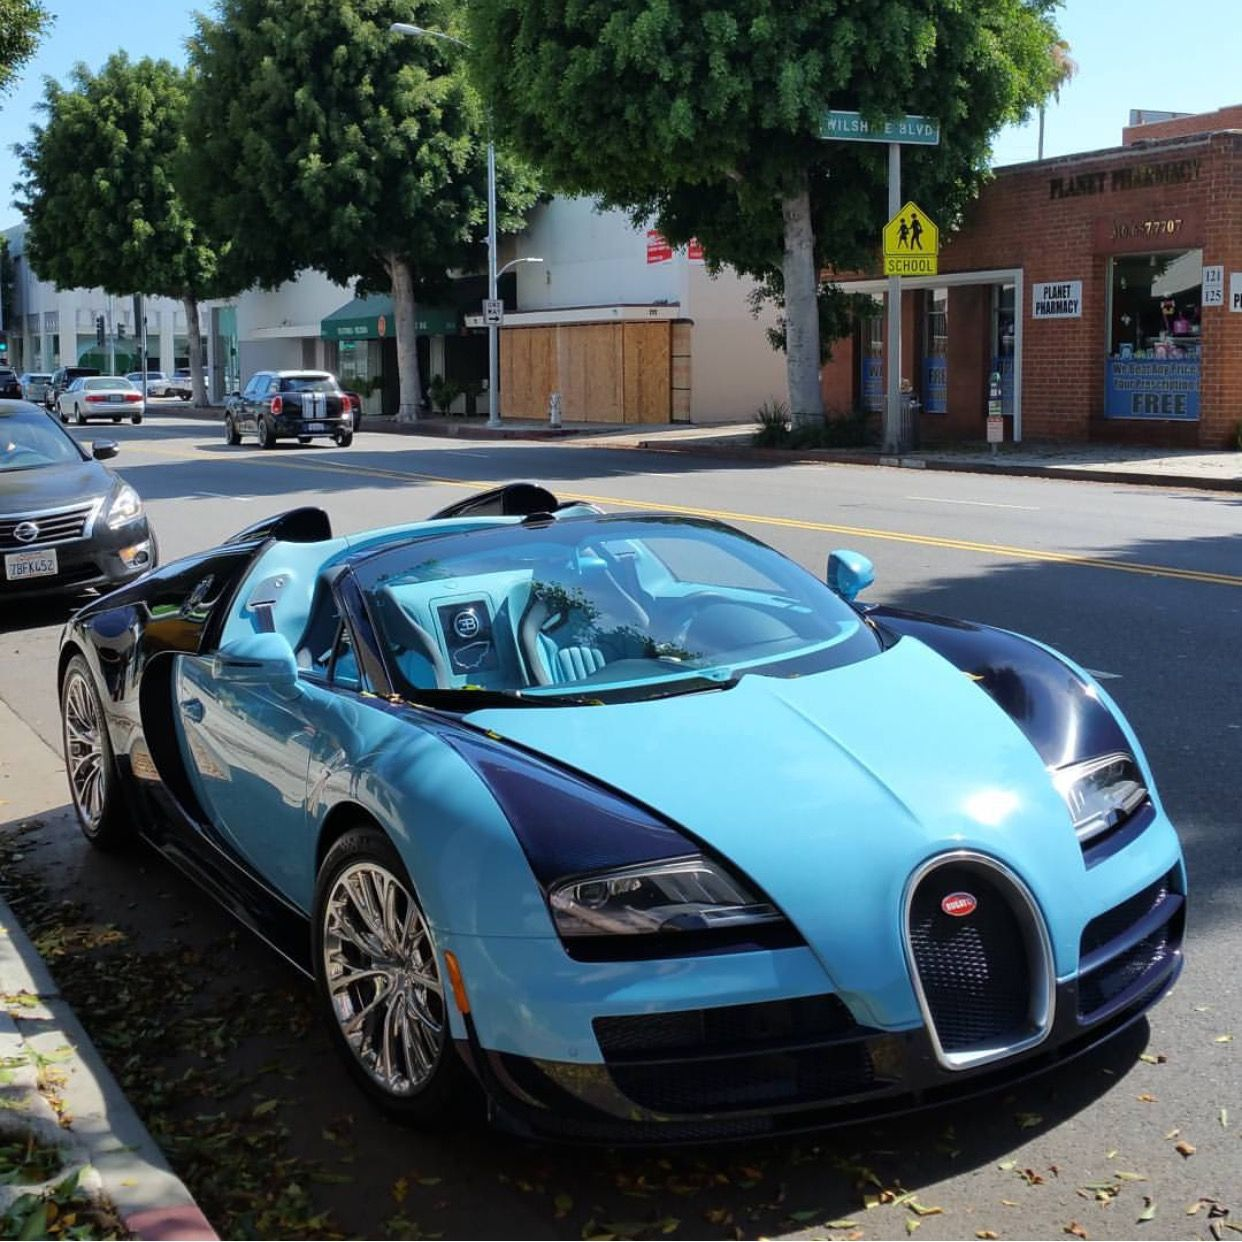 Bugatti Veyron Grand Sport Vitesse Legends Series Jean Pierre Wimille Painted In Light Blu Bugatti Veyron Grand Sport Vitesse Bugatti Veyron Cool Sports Cars